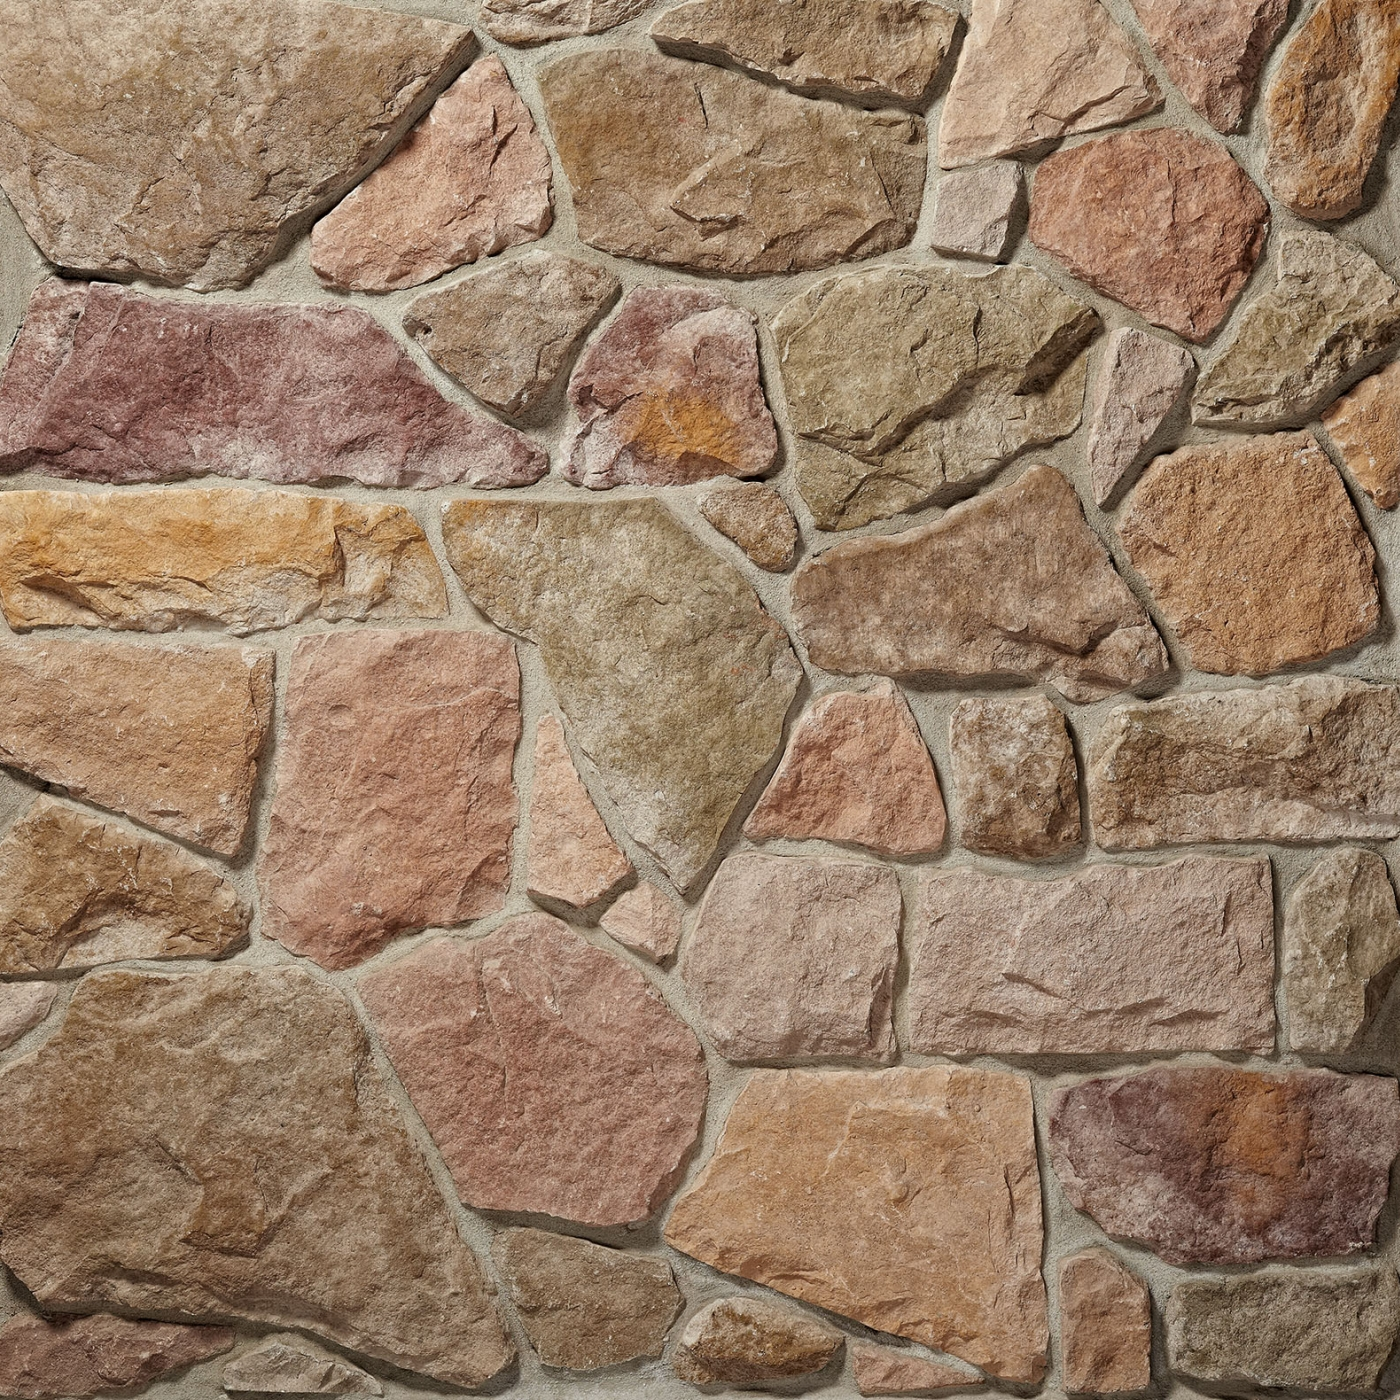 Autumn/Buckeye (50%/50%) Fieldstone Stone Veneer from Environmental StoneWorks